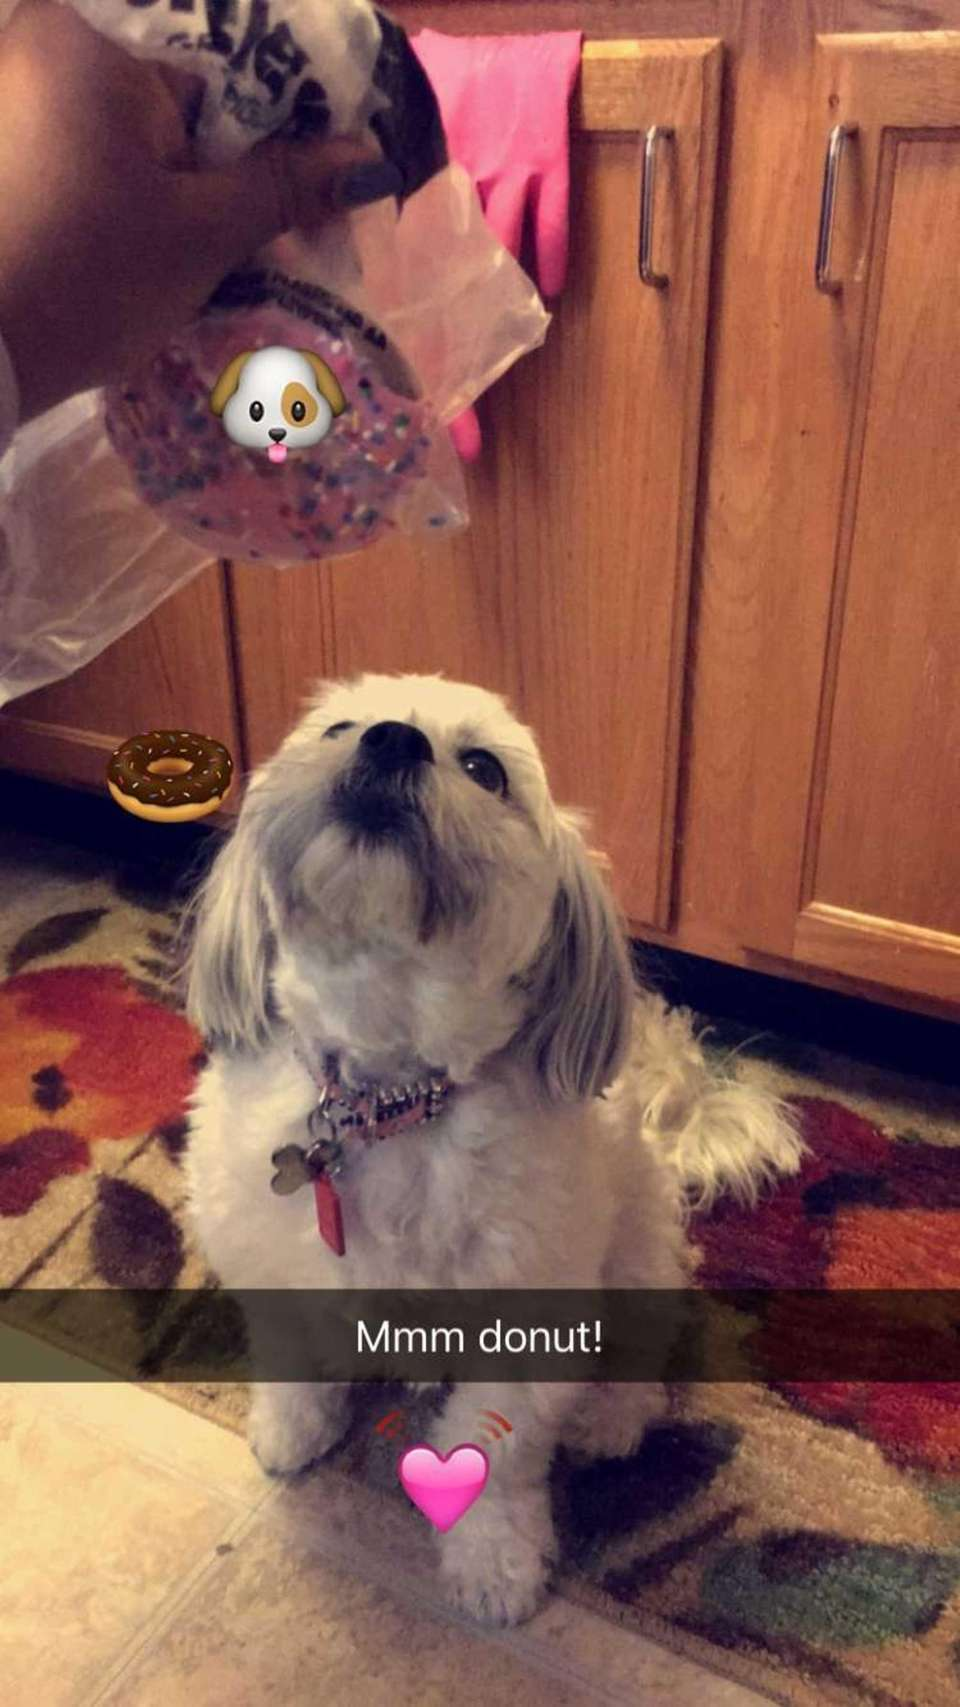 This birthday featured Emma's favorite treat! Puppy donuts!!